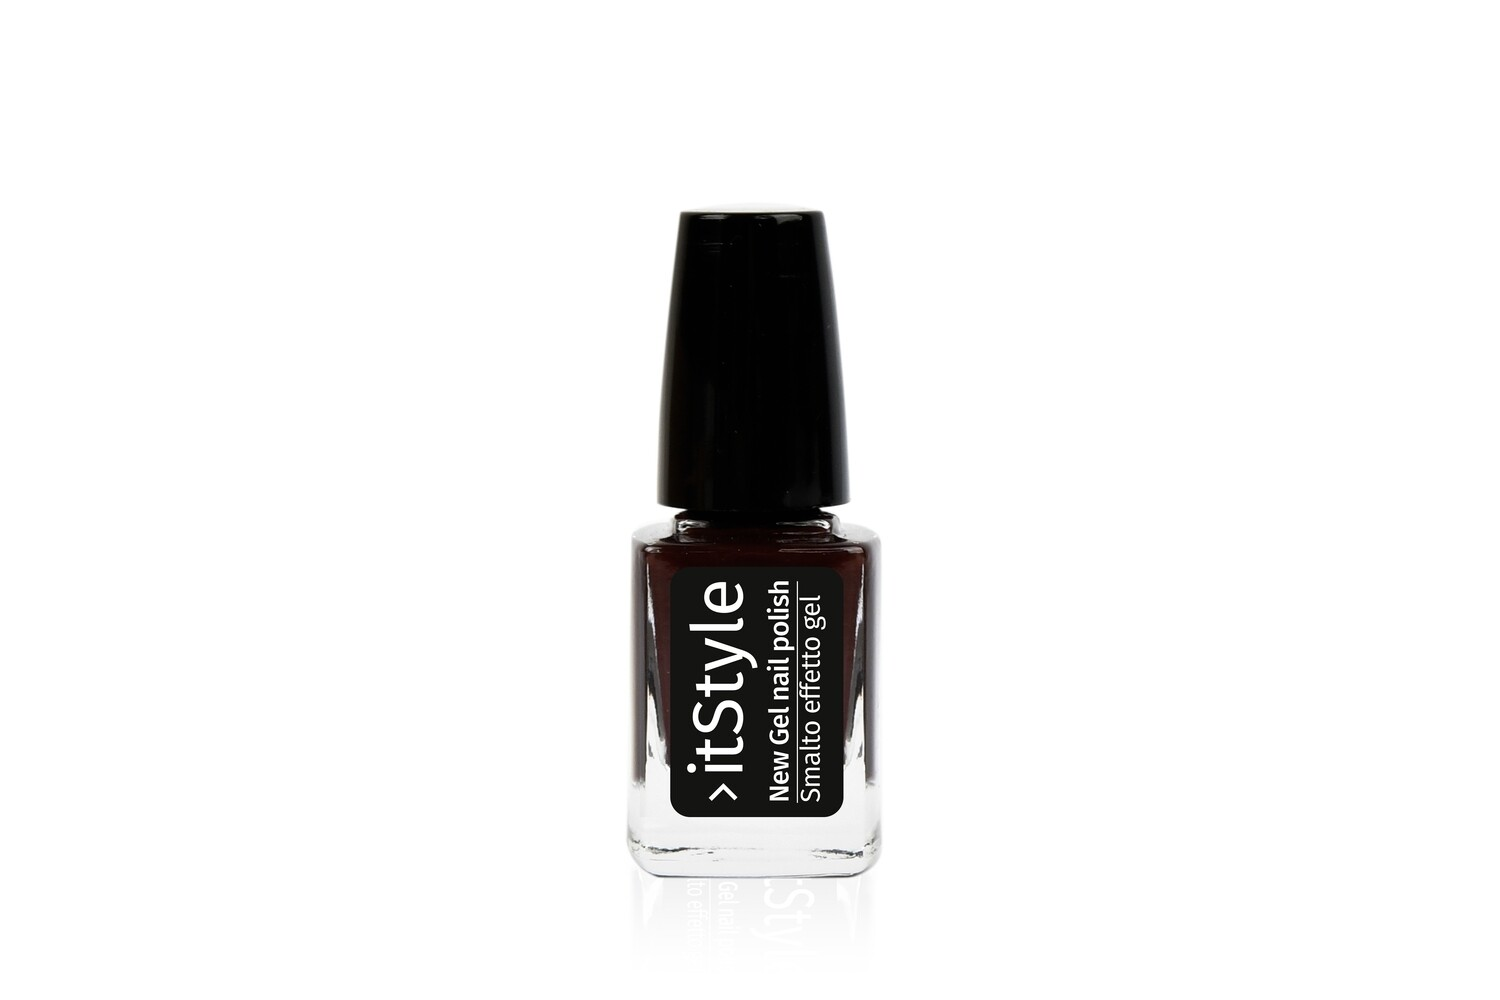 NEW GEL NAIL POLISH ROUGE NOIR SM15/17